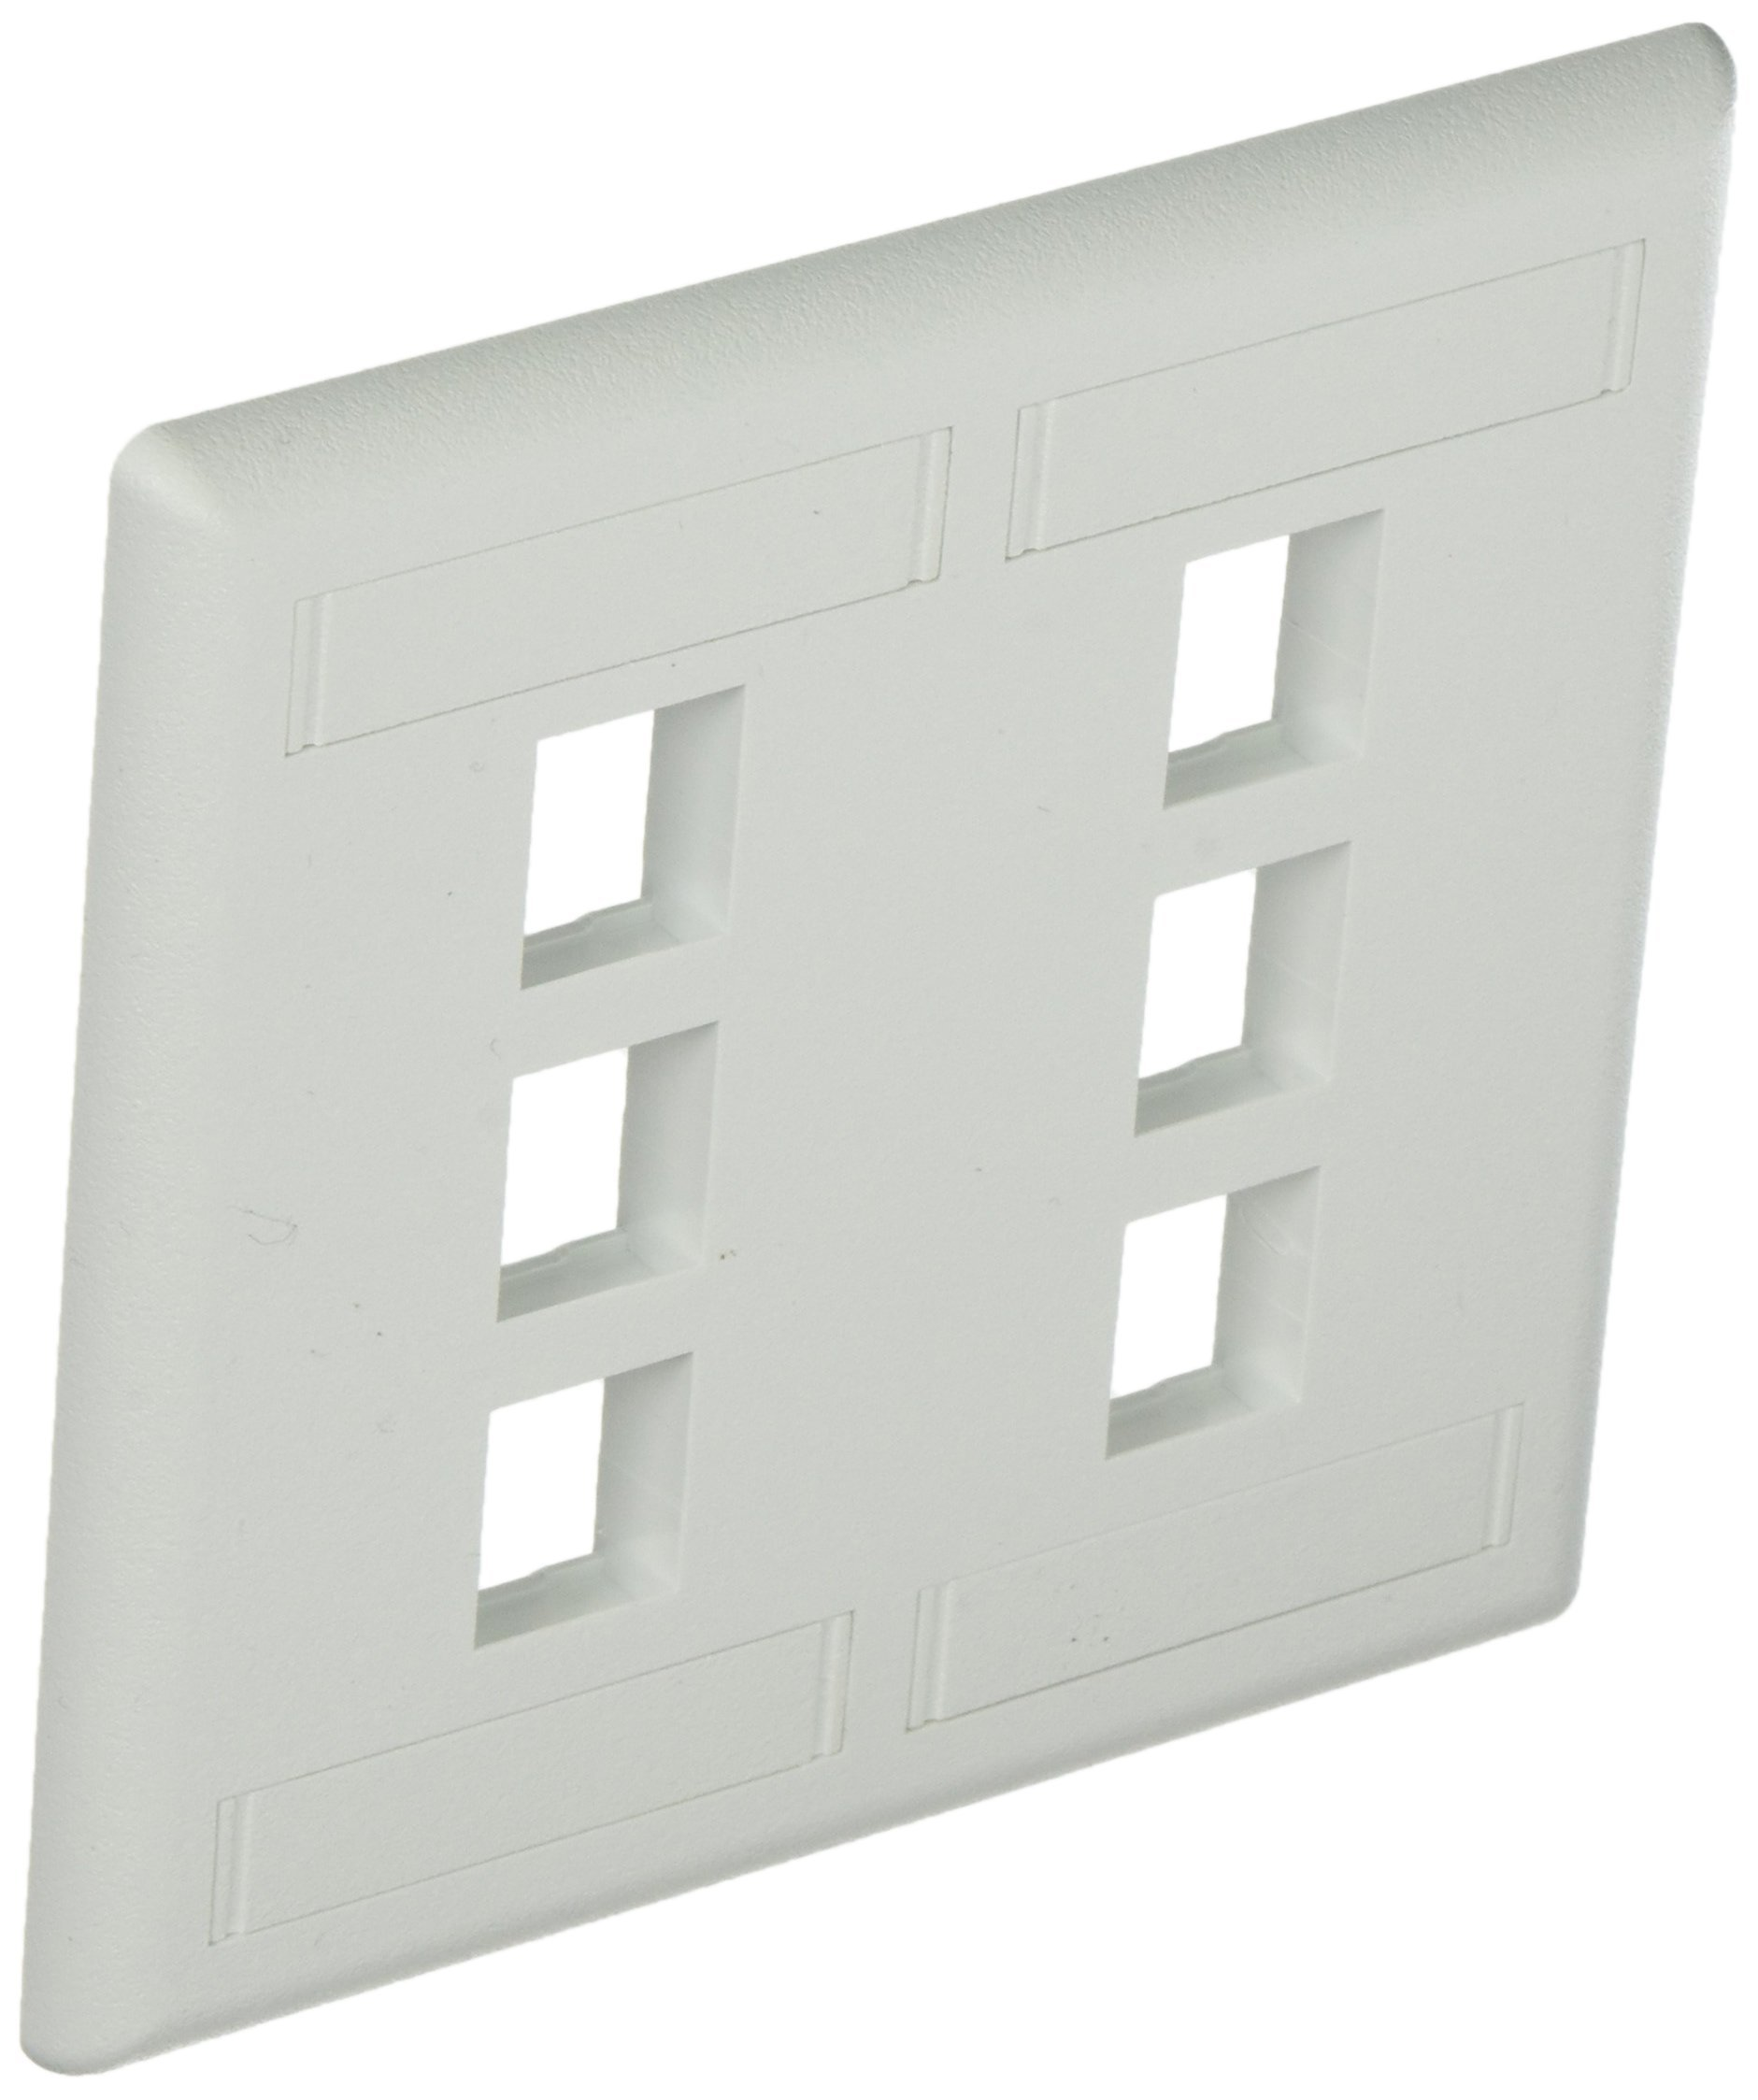 Hubbell IFP26W Flush Phone/Data/Multimedia Wall Plate, 2 Gang, 6 Port, White (Pack of 10)